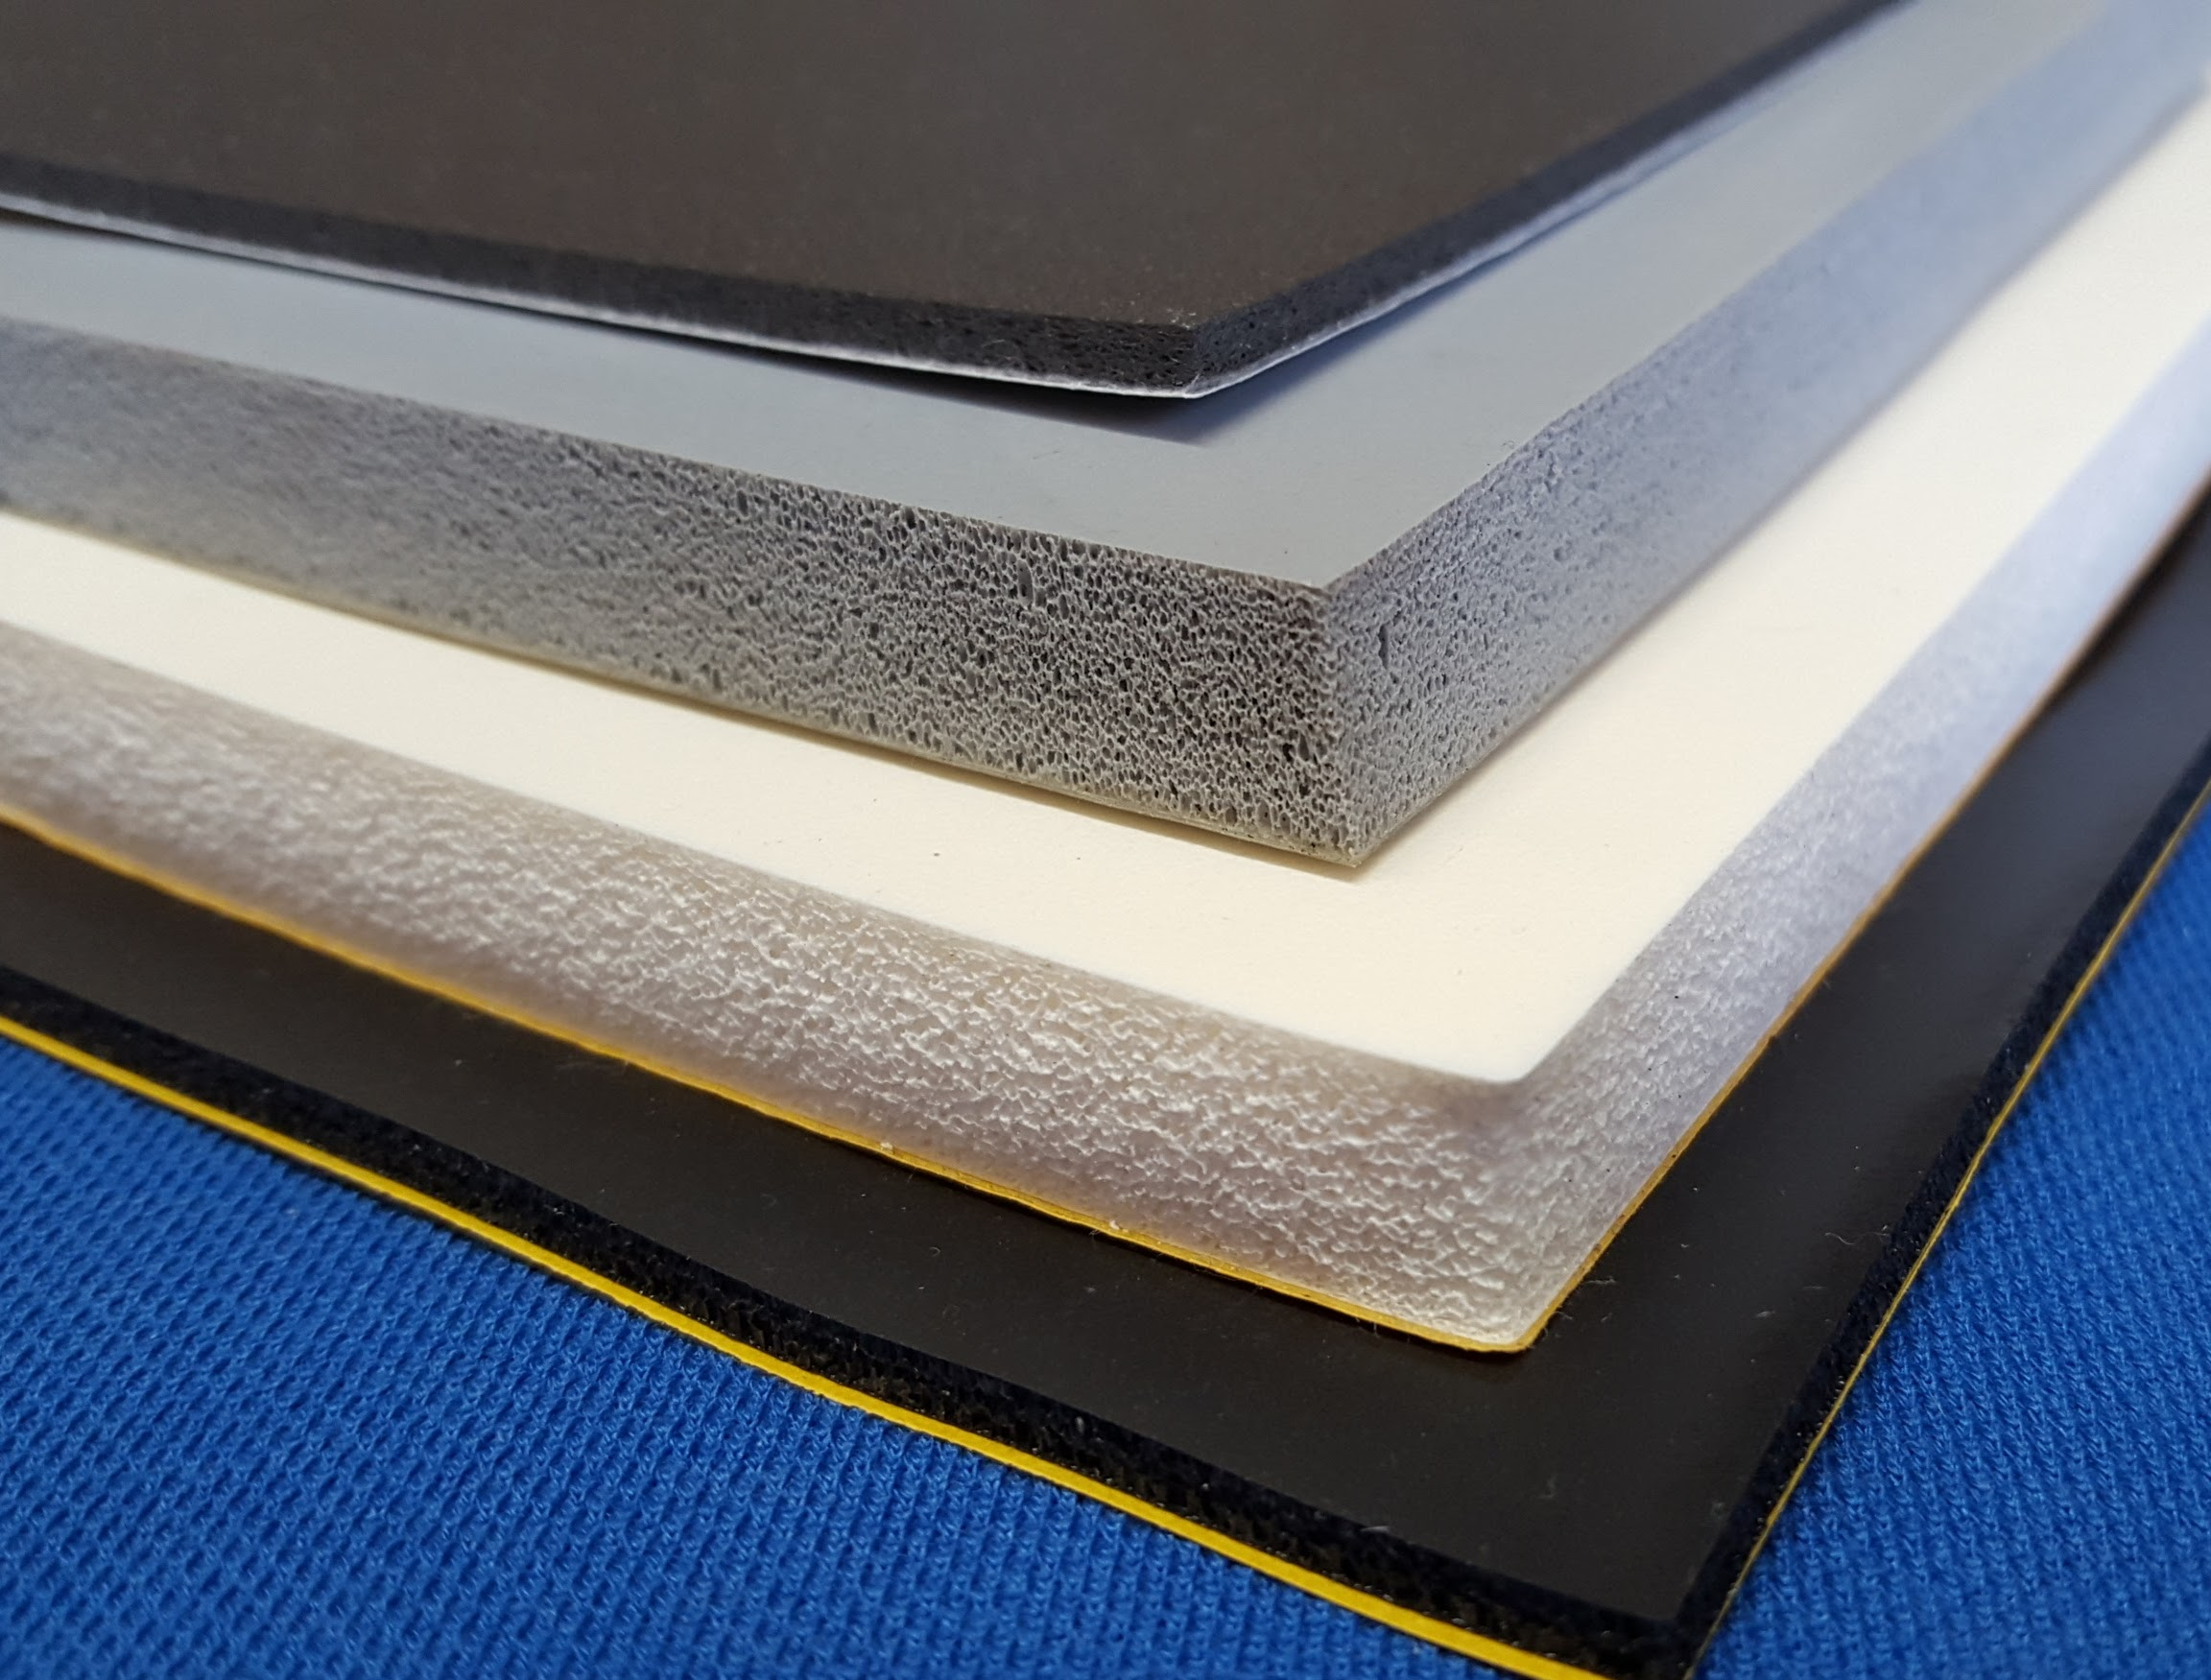 Best Applications for Silicone Sponge Sheets